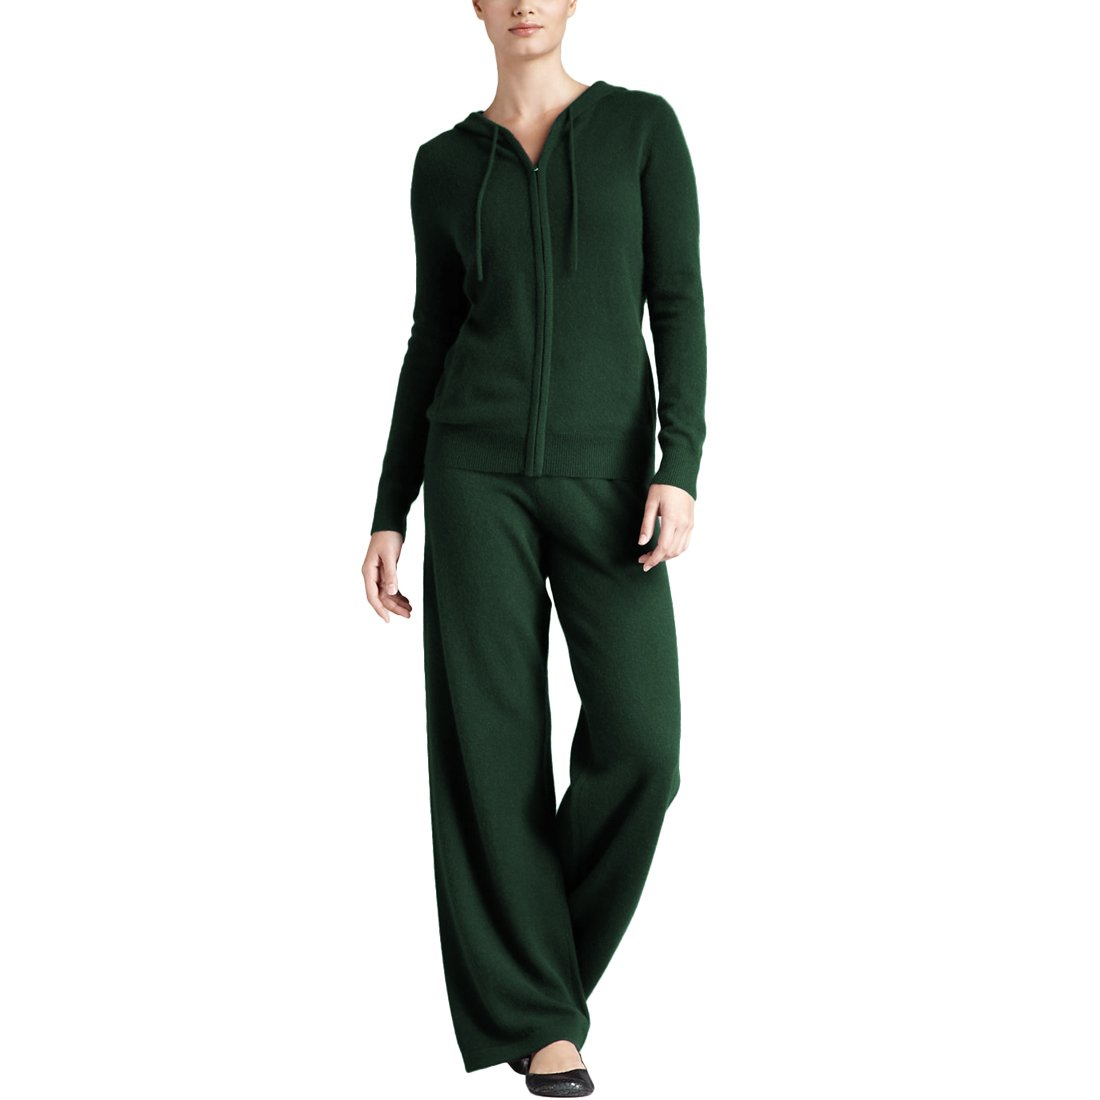 Parisbonbon Women's 100% Cashmere Sweater and Pants Set Color Hunter Green Size XL